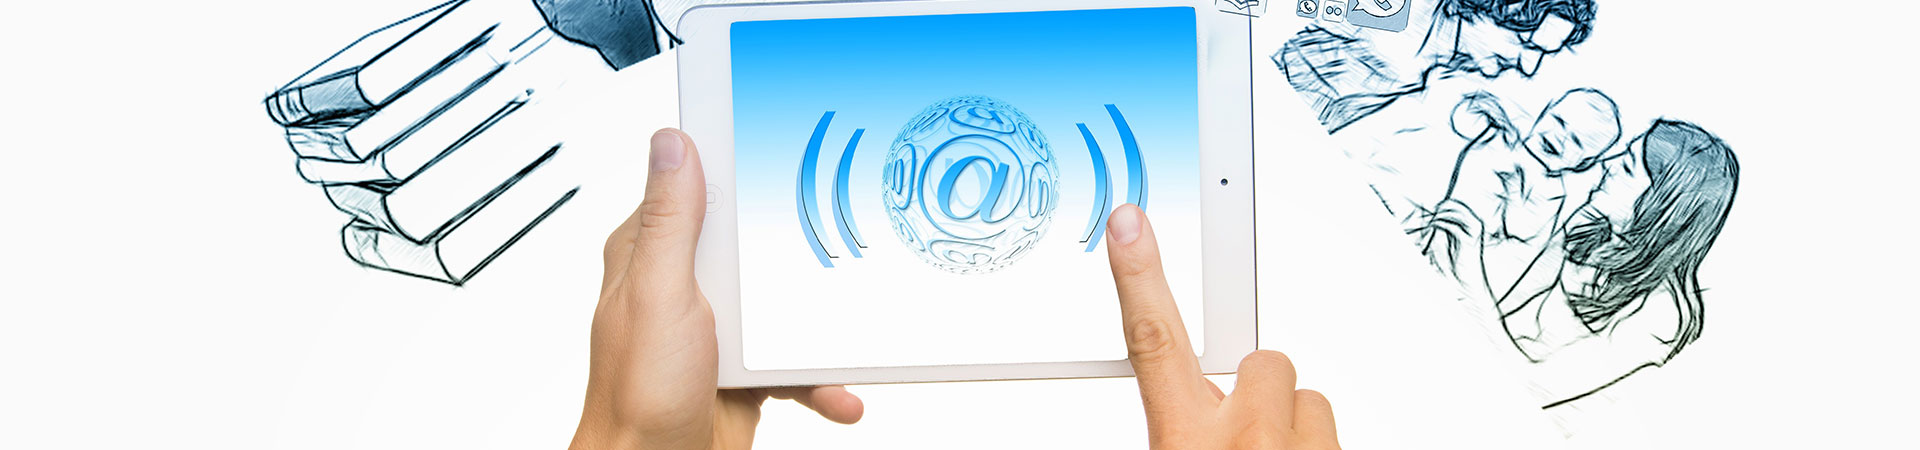 E-mail Marketing y NewslettersE-mail Marketing y Newsletters